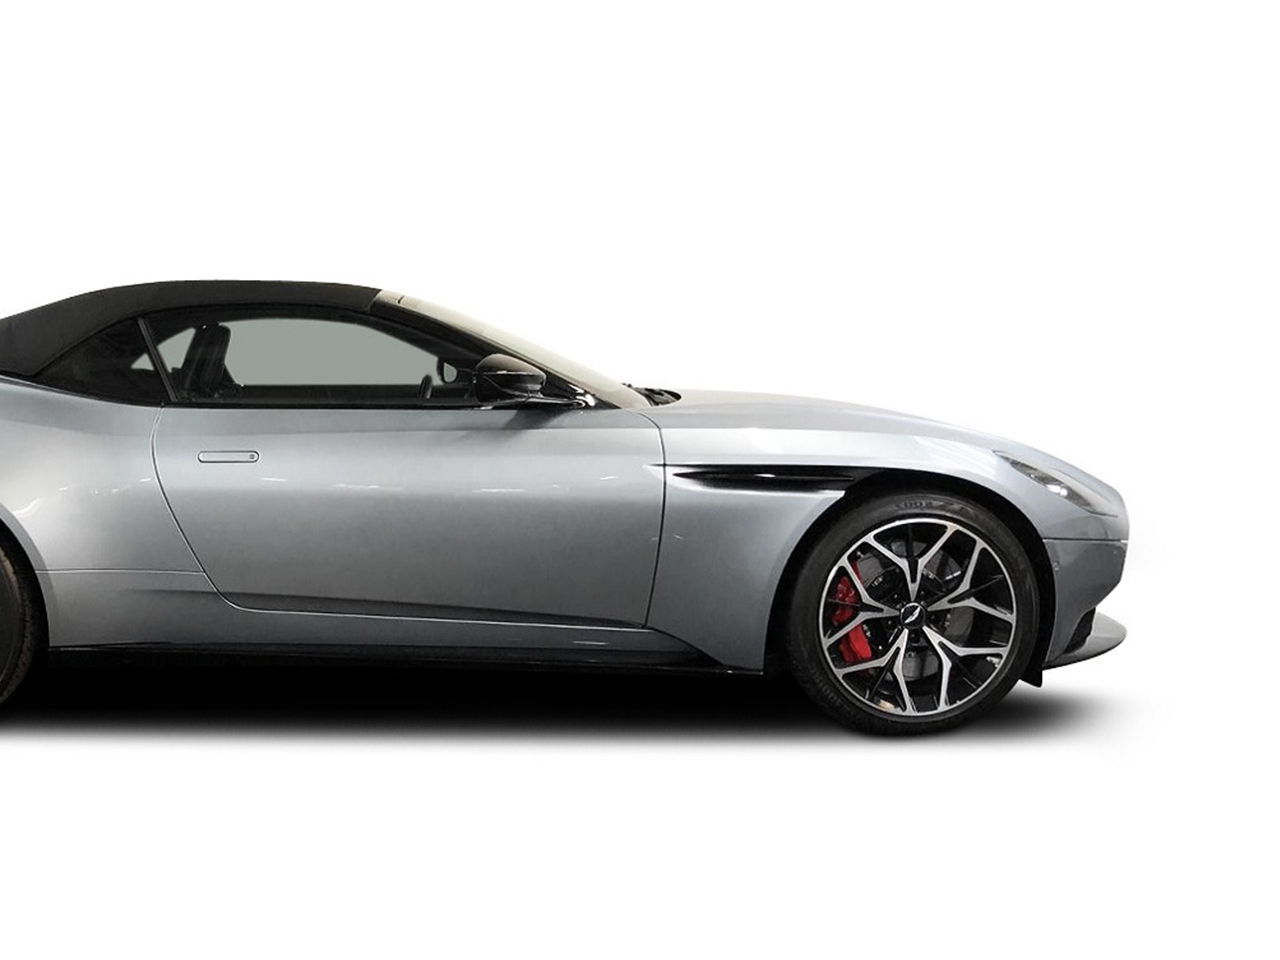 aston martin db11 volante book now from £495 / day